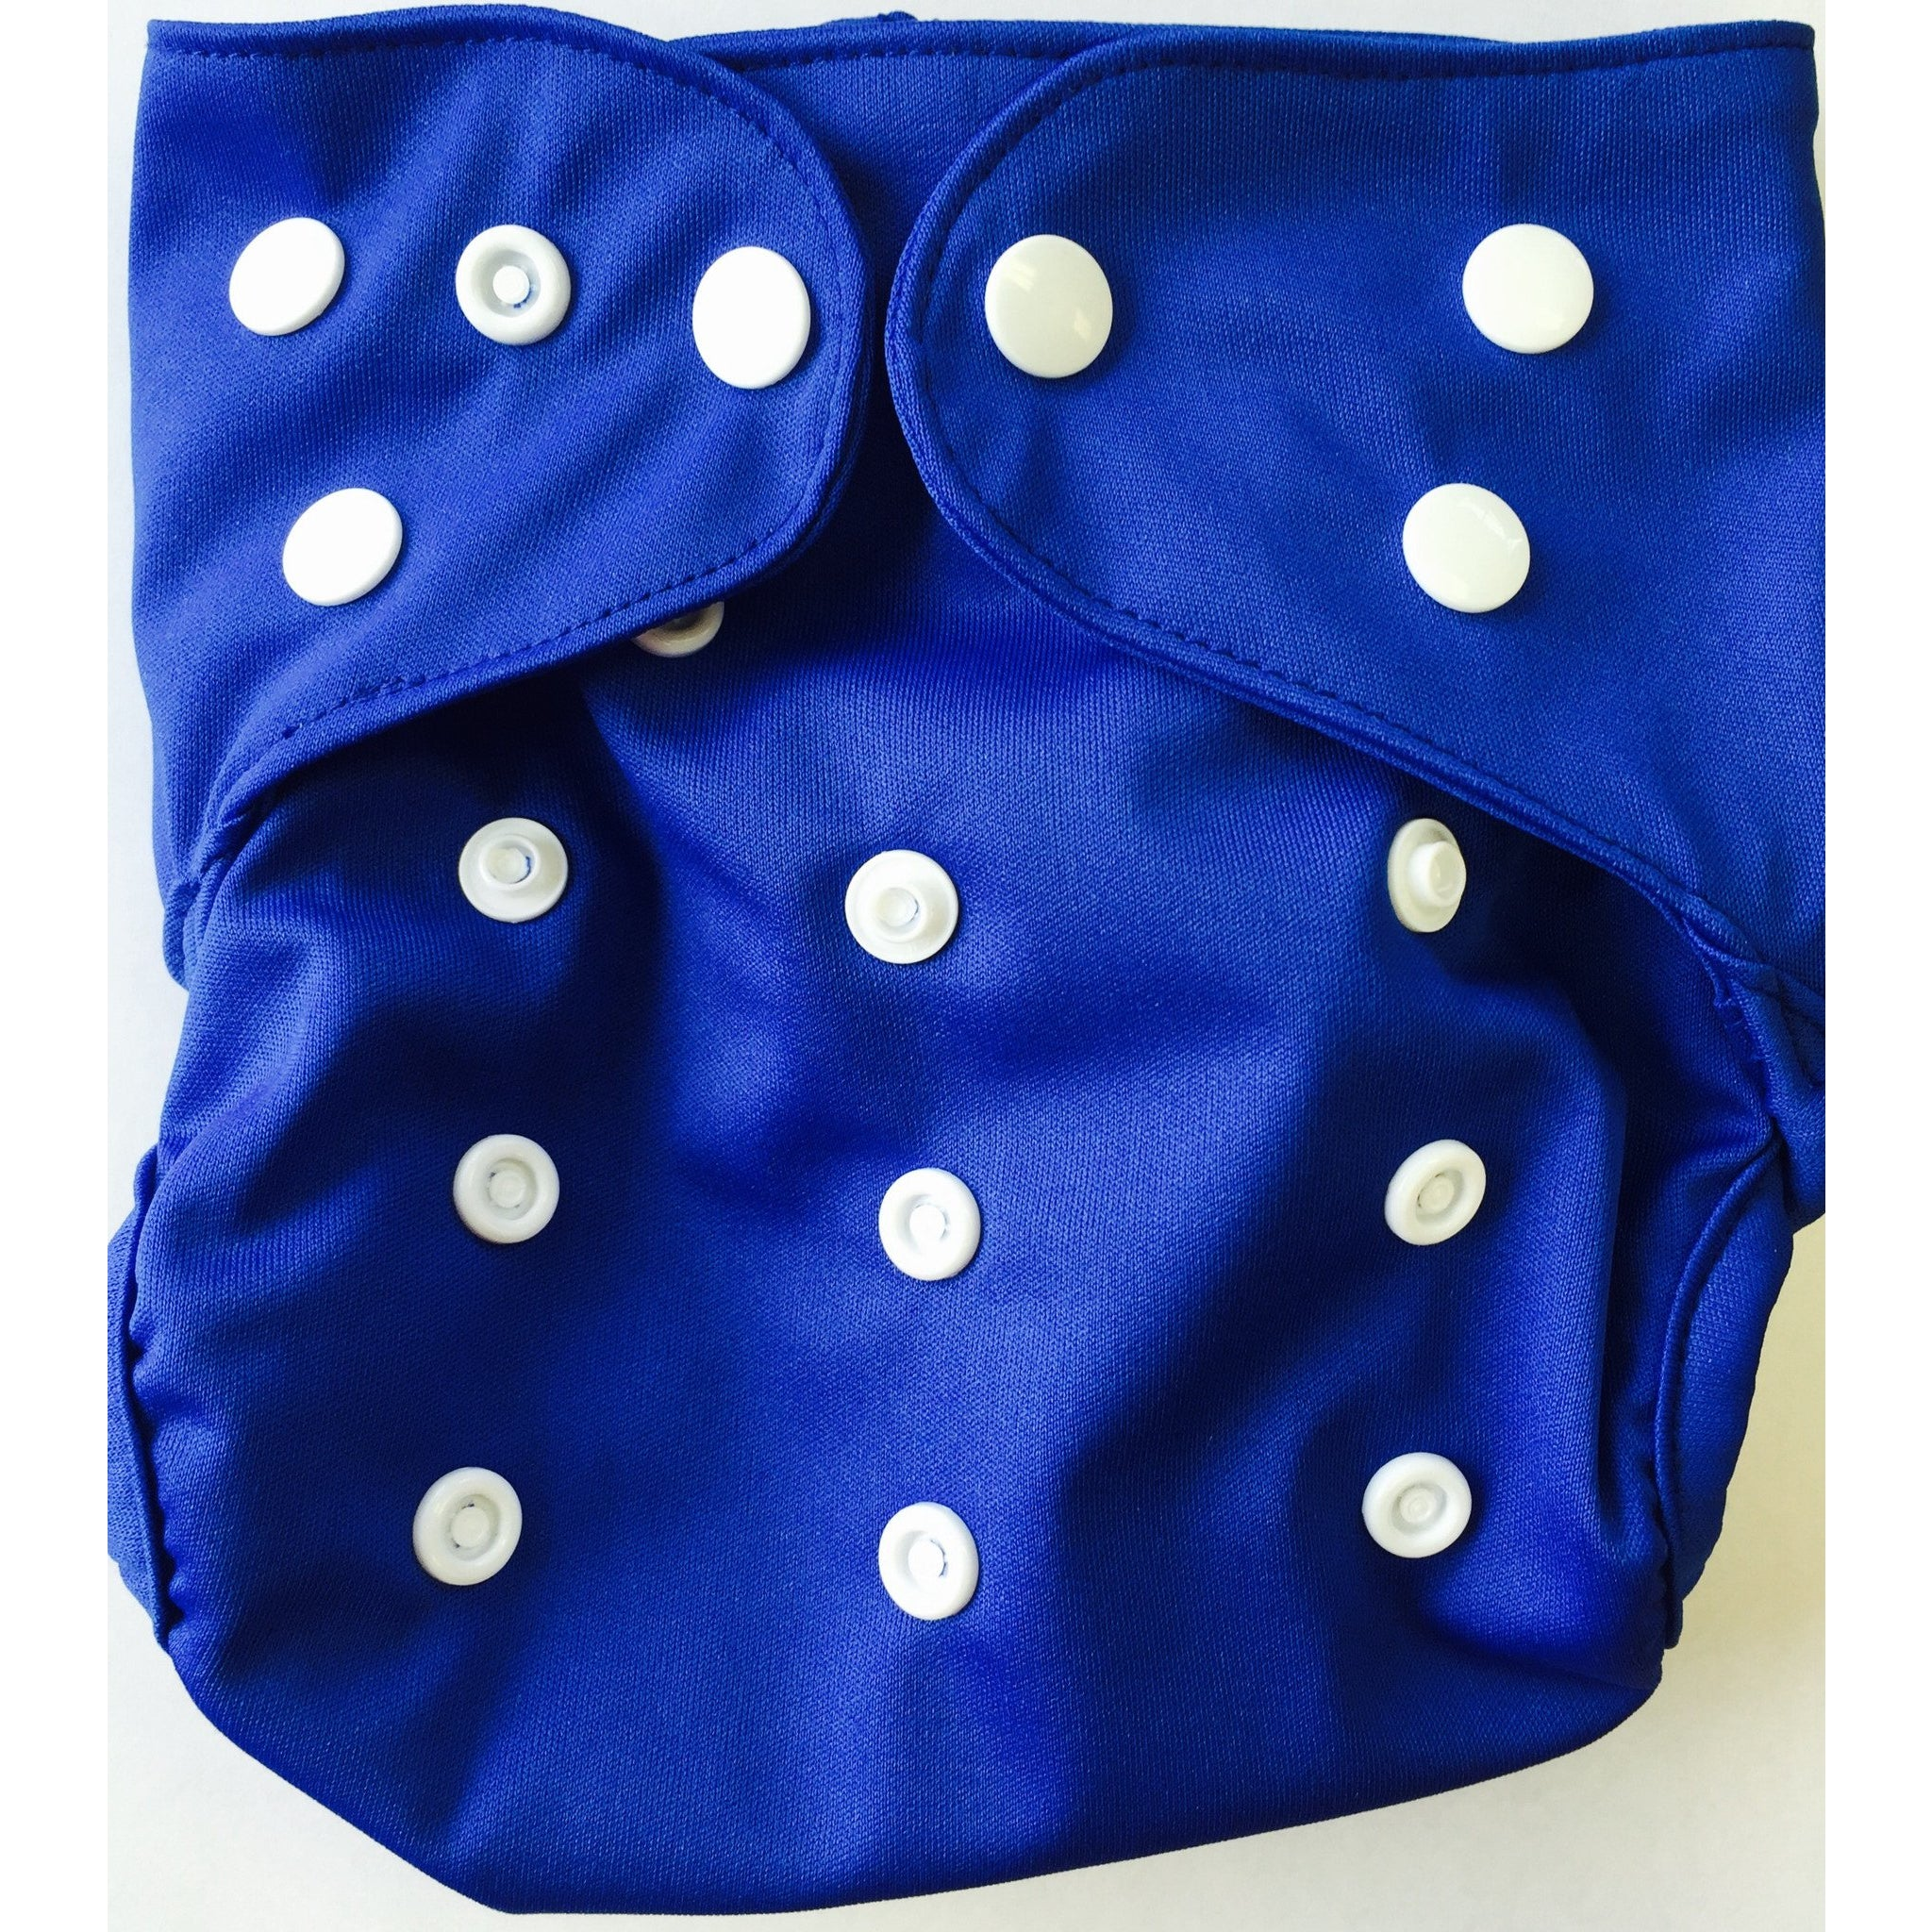 Lil' Bamboo Diaper Cover - Royal Blue